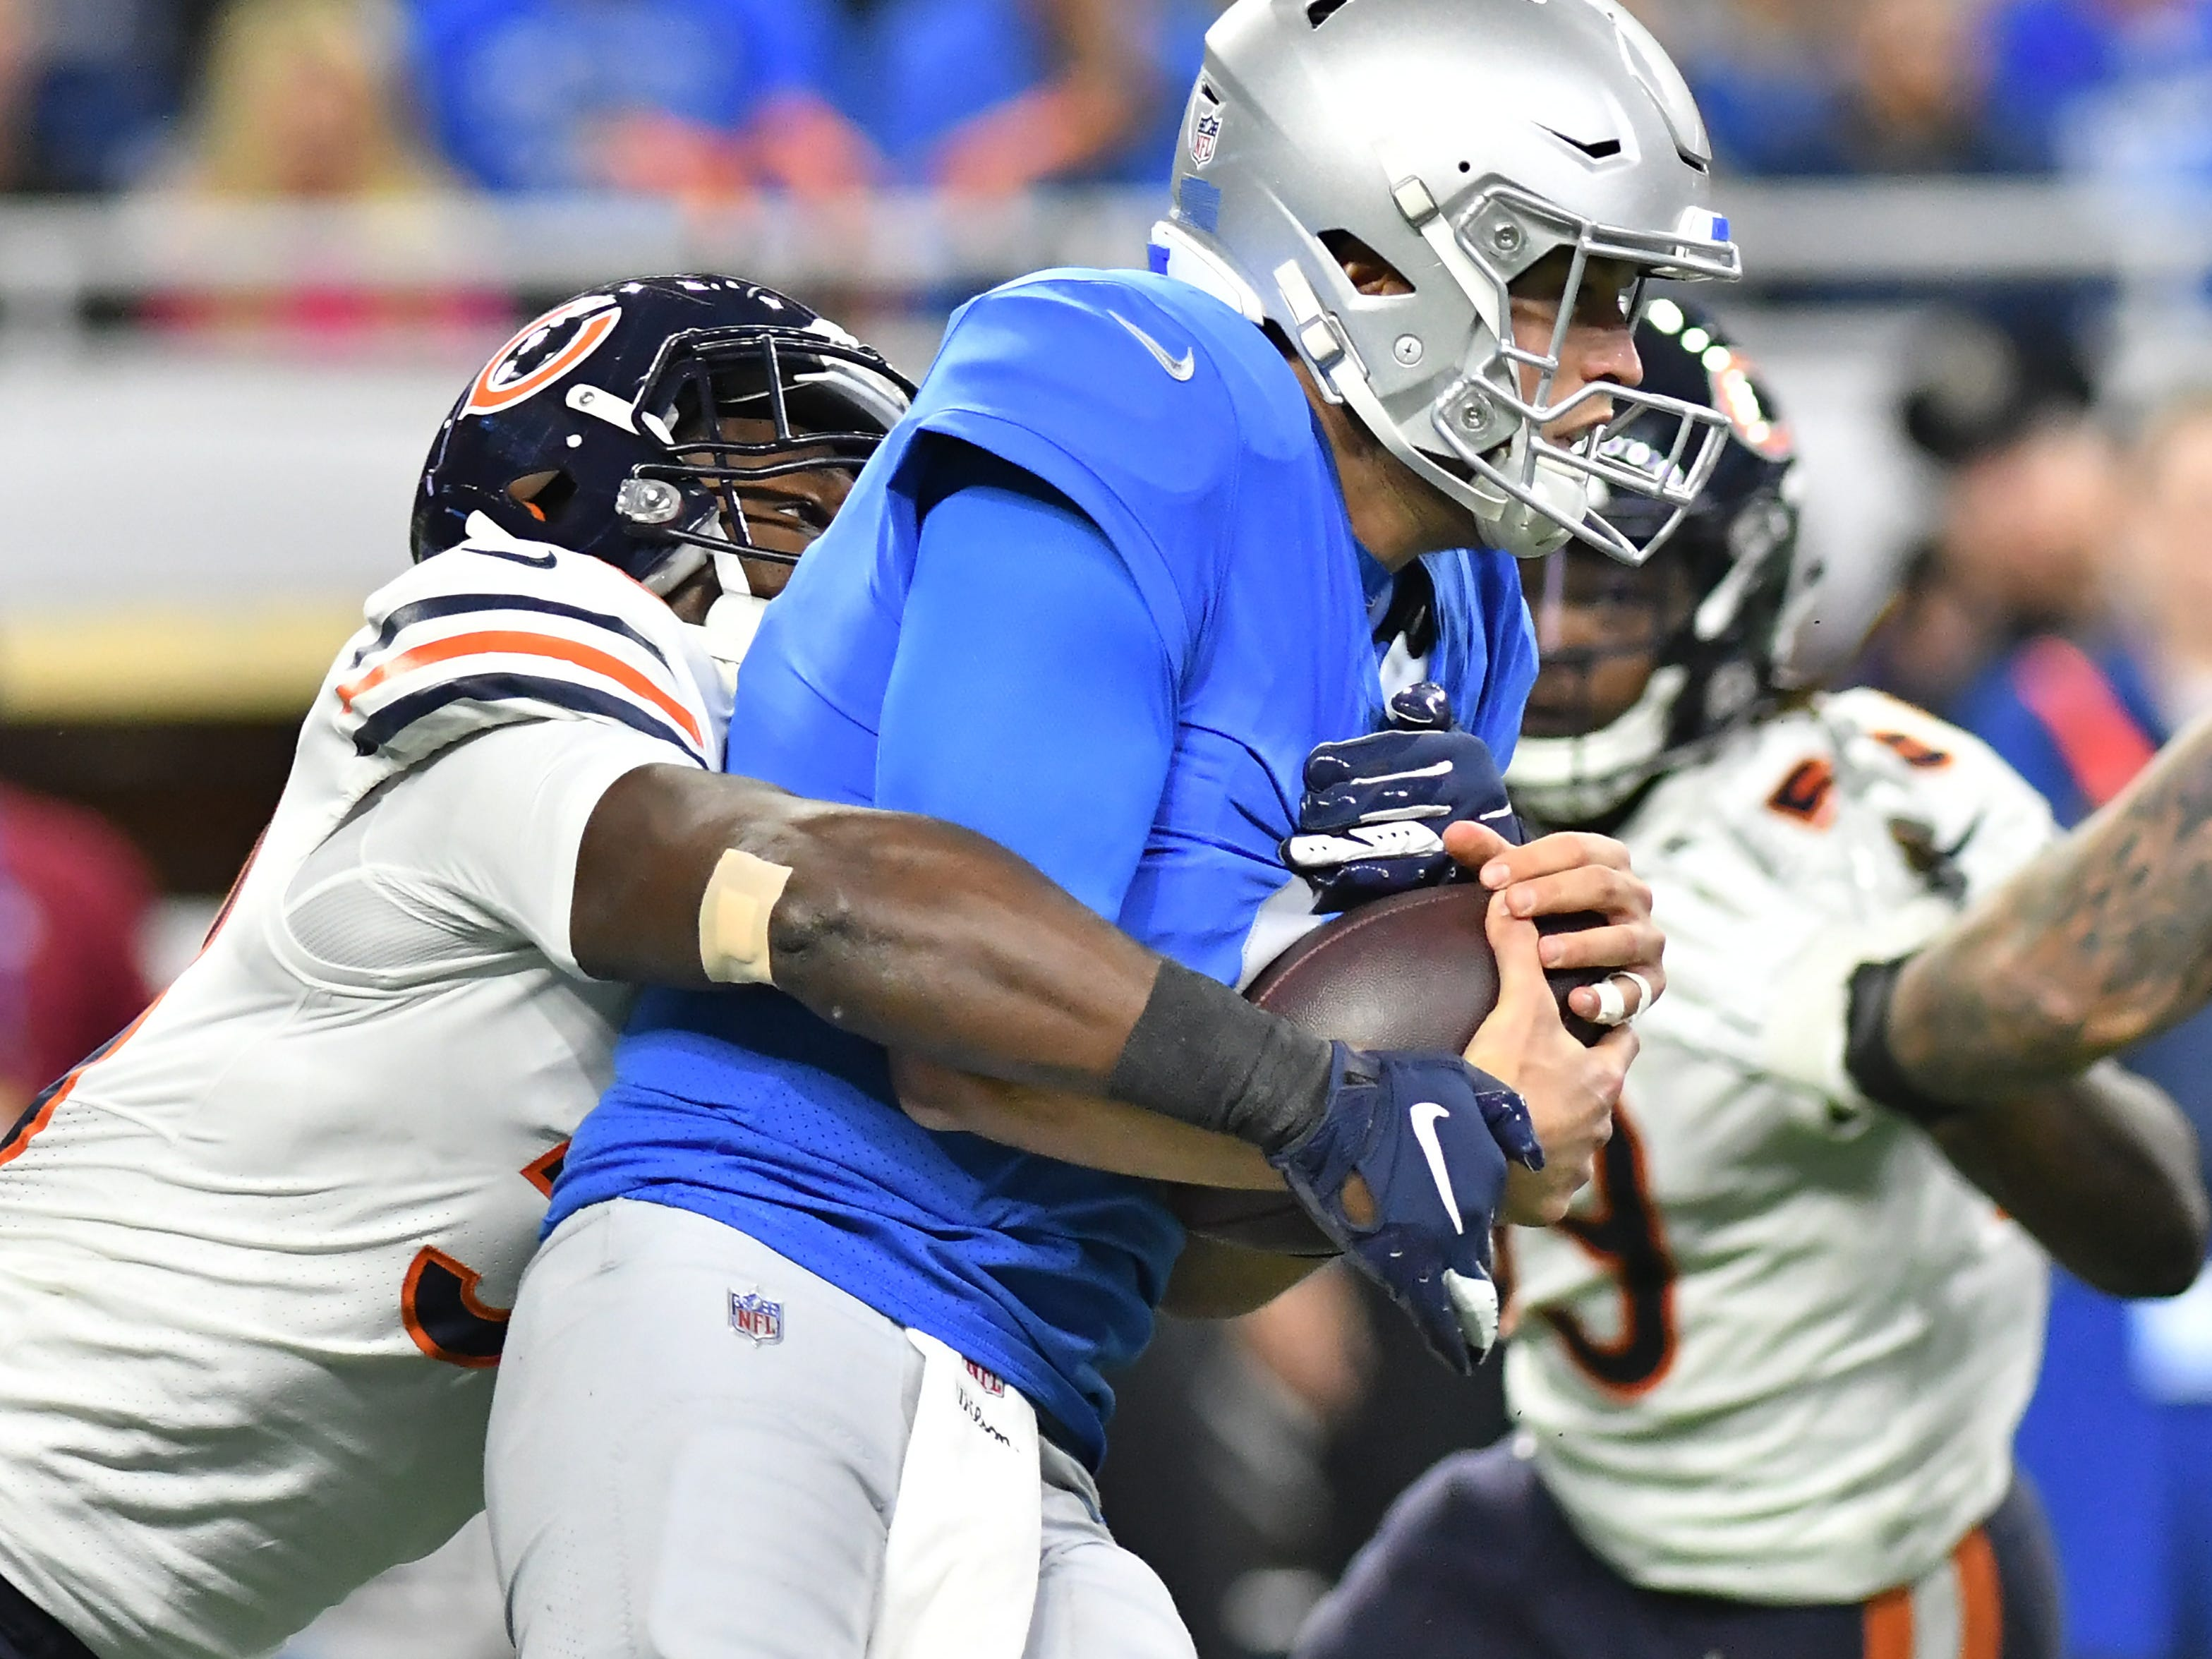 Bears' Roquan Smith comes in to sack Lions quarterback Matthew Stafford In the second quarter. Detroit Lions vs Chicago Bears on Thanksgiving Day at Ford Field in Detroit on Nov. 22, 2018. (Robin Buckson / Detroit News)